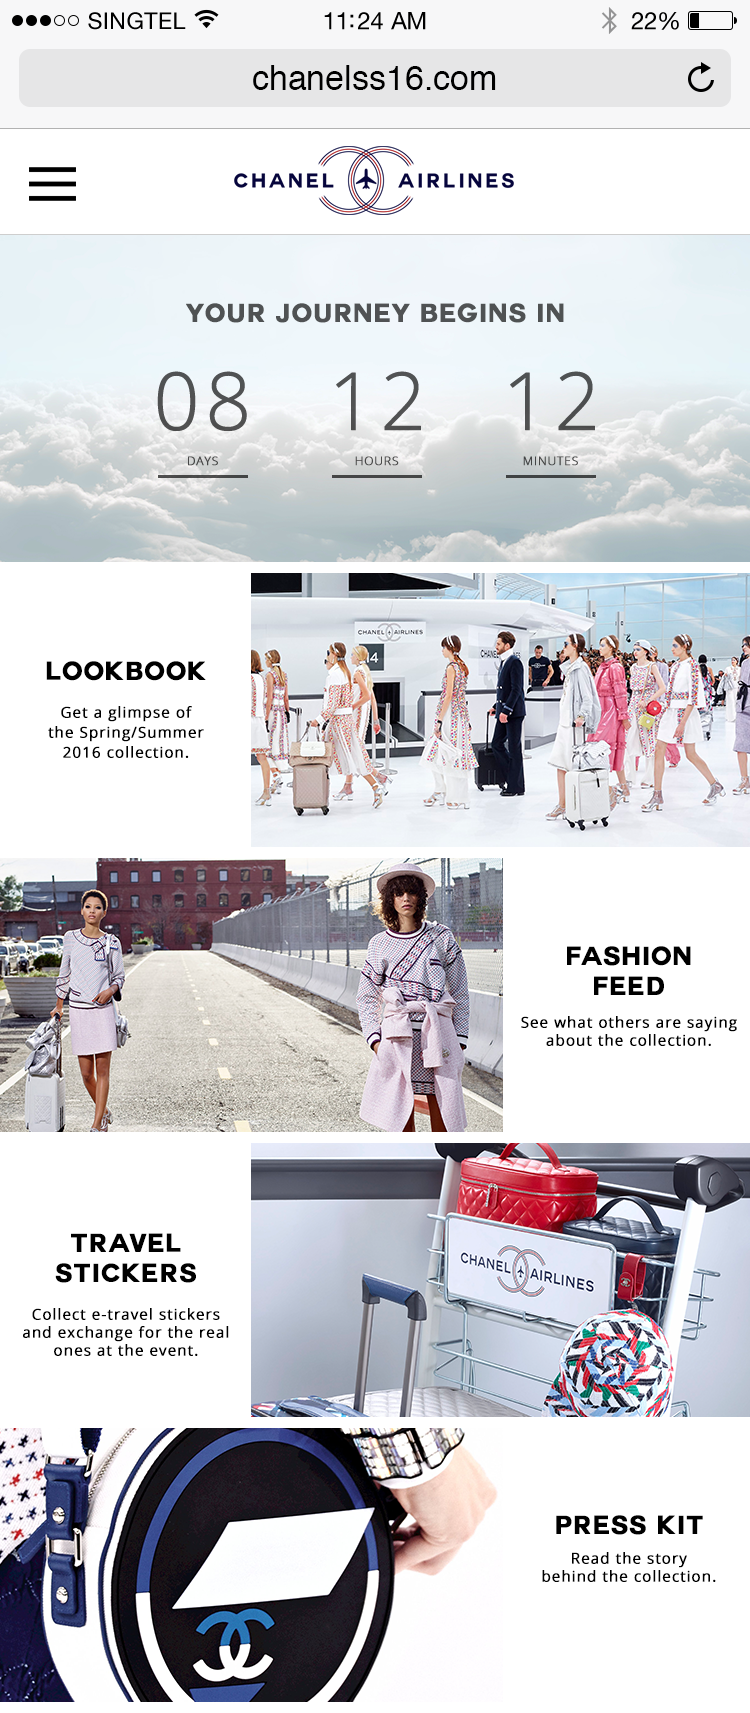 Landing-PAGE-(Microsite-Mobile-View).png